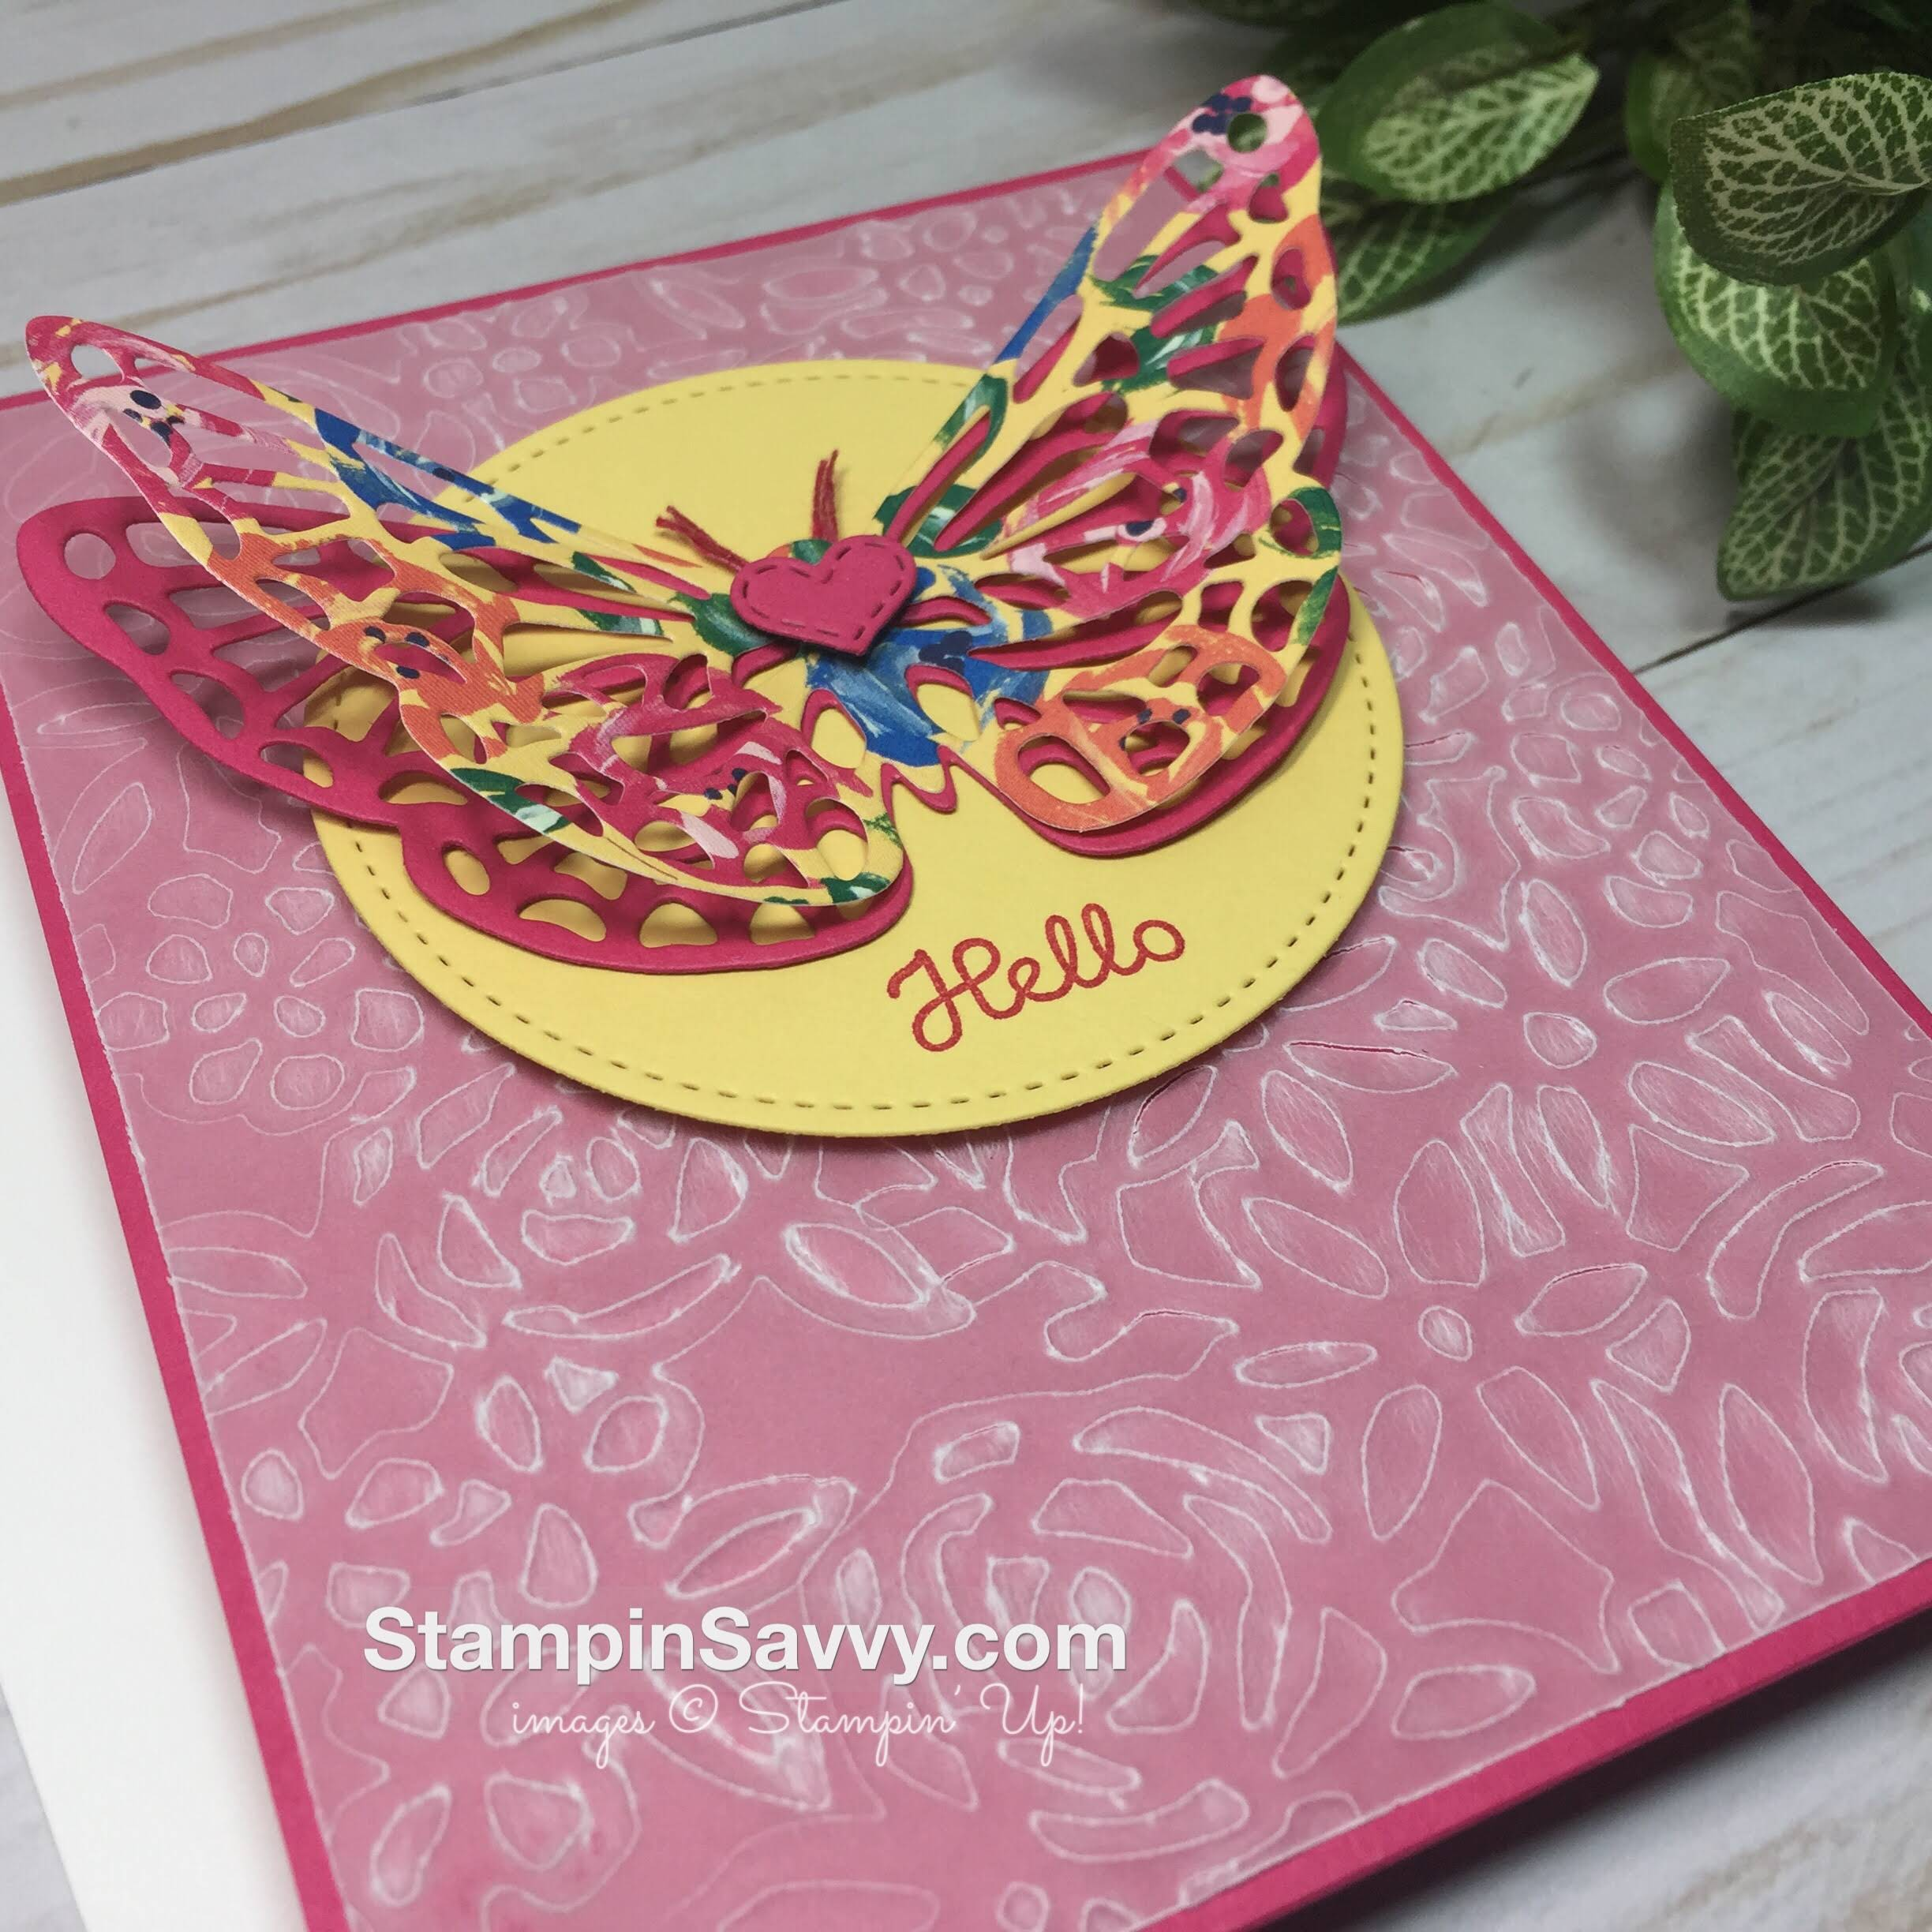 embossed vellum-springtime-impressions-thinlits-card-ideas-stampin-up-stampinup-stampin-savvy-stampinsavvy-tammy-beard